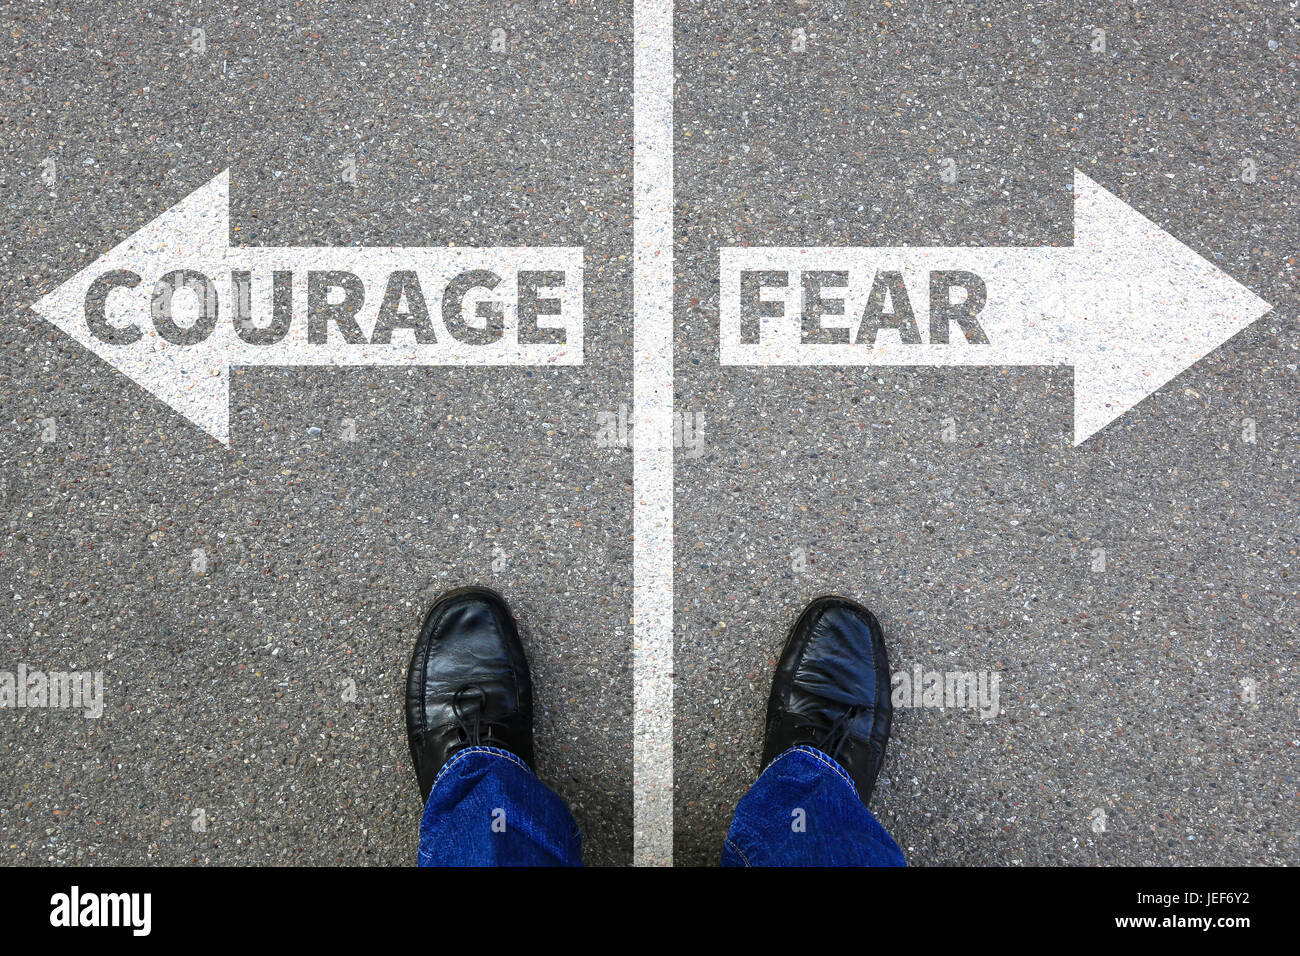 Courage and fear risk safety future strength strong business concept danger dangerous - Stock Image